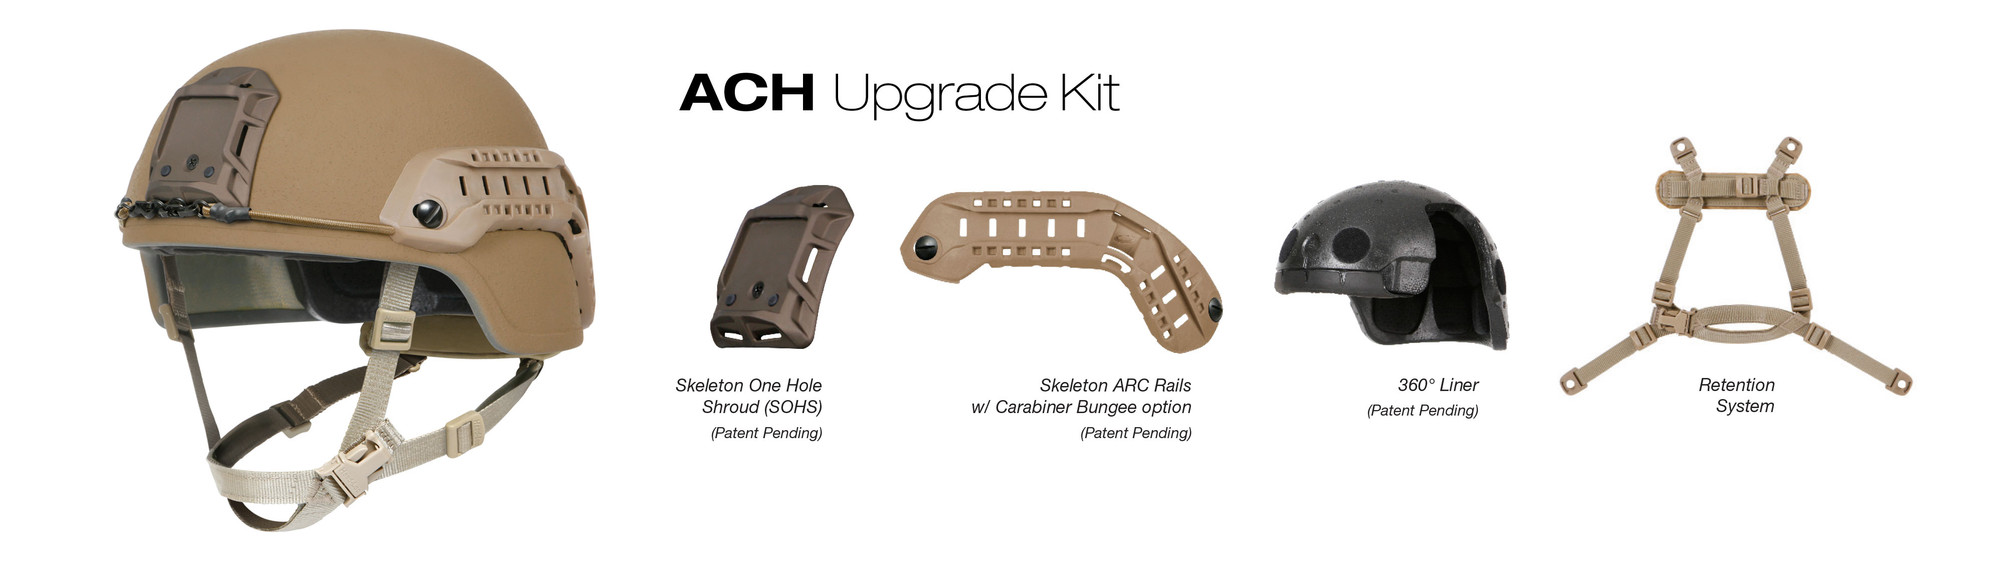 NEW OPS-CORE UPGRADE KIT FOR ACH COST EFFECTIVELY TRANSFORMS IT INTO A SYSTEM PLATFORM